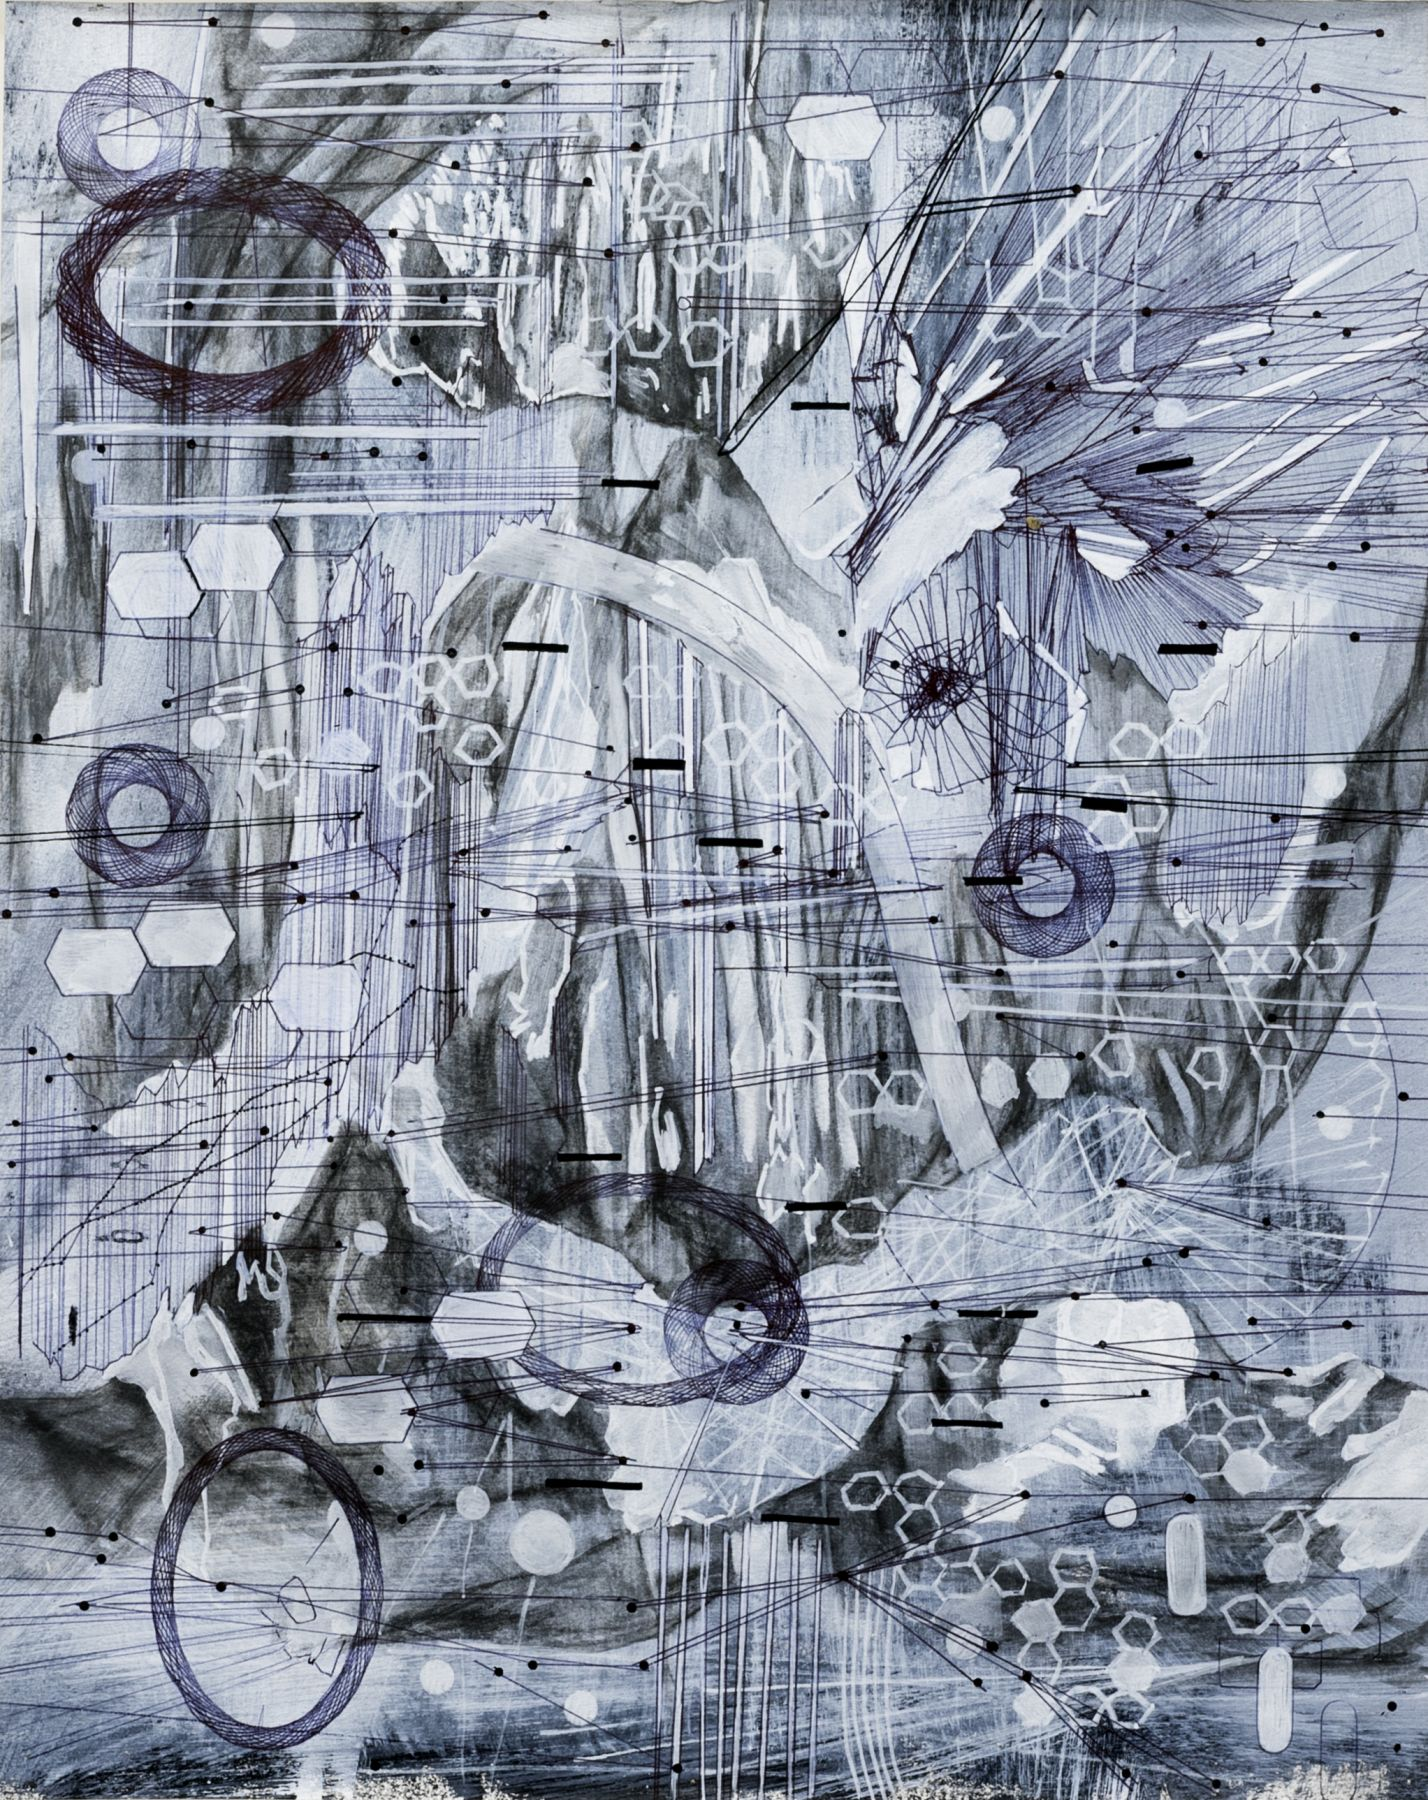 AMY SCHISSEL   POST DIGITAL LANDSCAPES SERIES #5   ACRYLIC, GRAPHITE, CHARCOAL AND INK ON PAPER   22,5 X 18 INCHES   2017